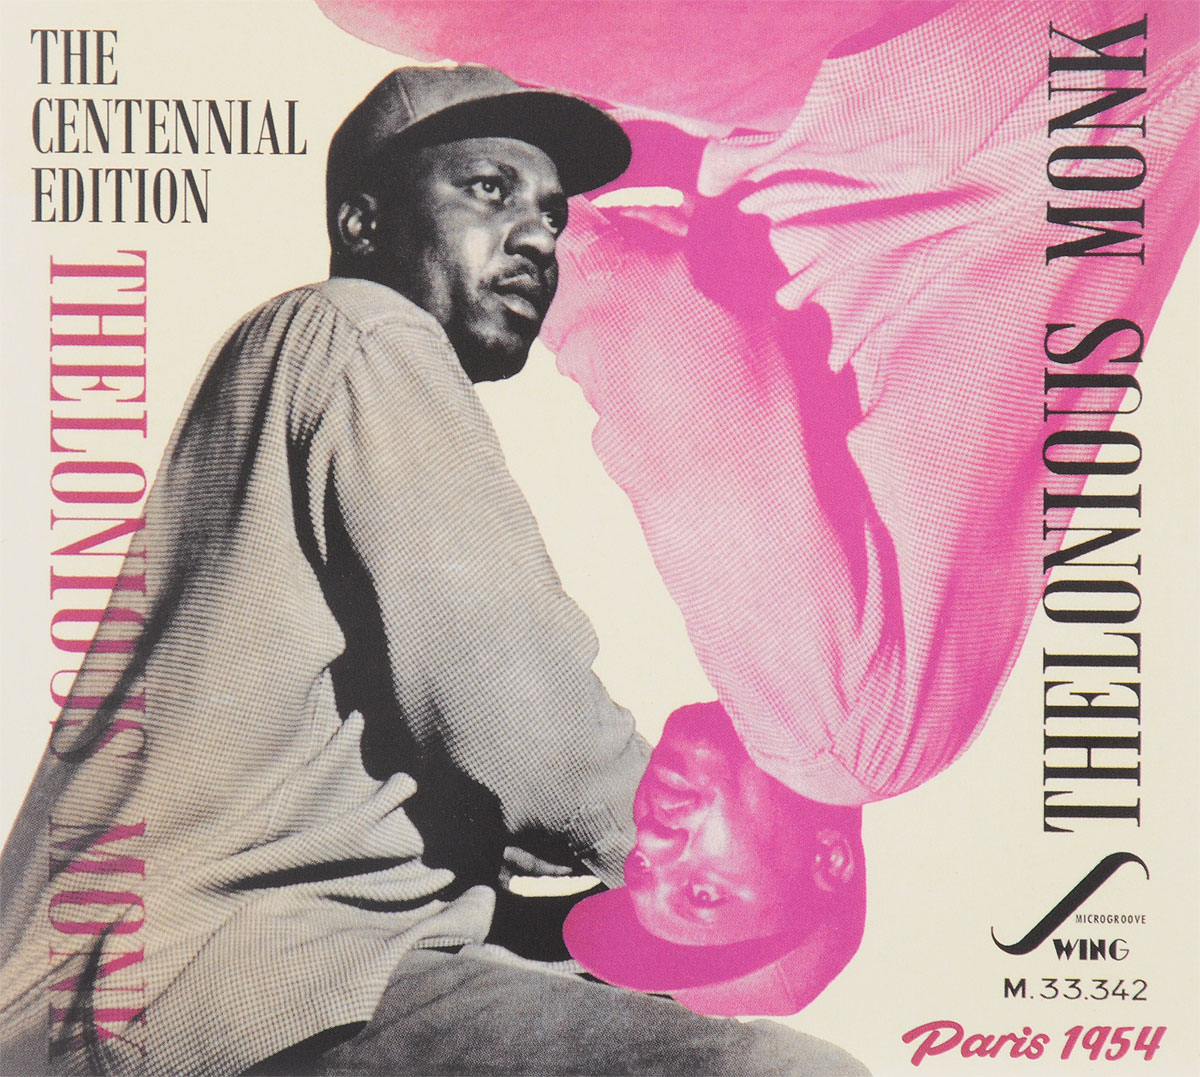 лучшая цена Телониус Монк Thelonious Monk. Piano Solo. The Centennial Edition